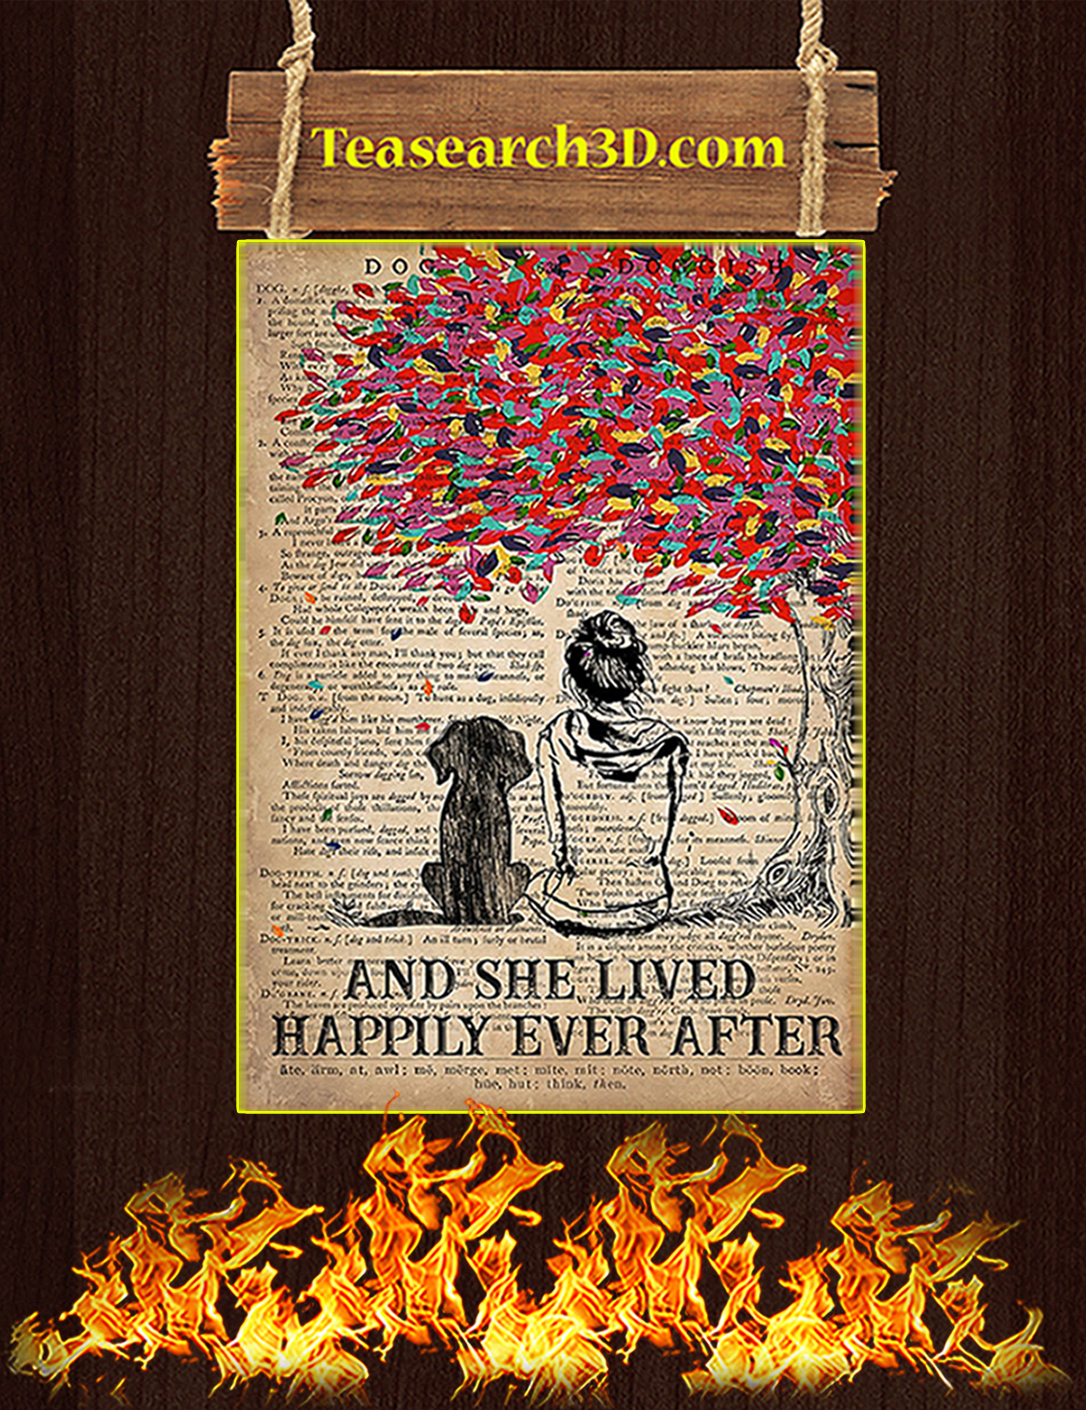 Dog And She Lived Happily Ever After Poster A3